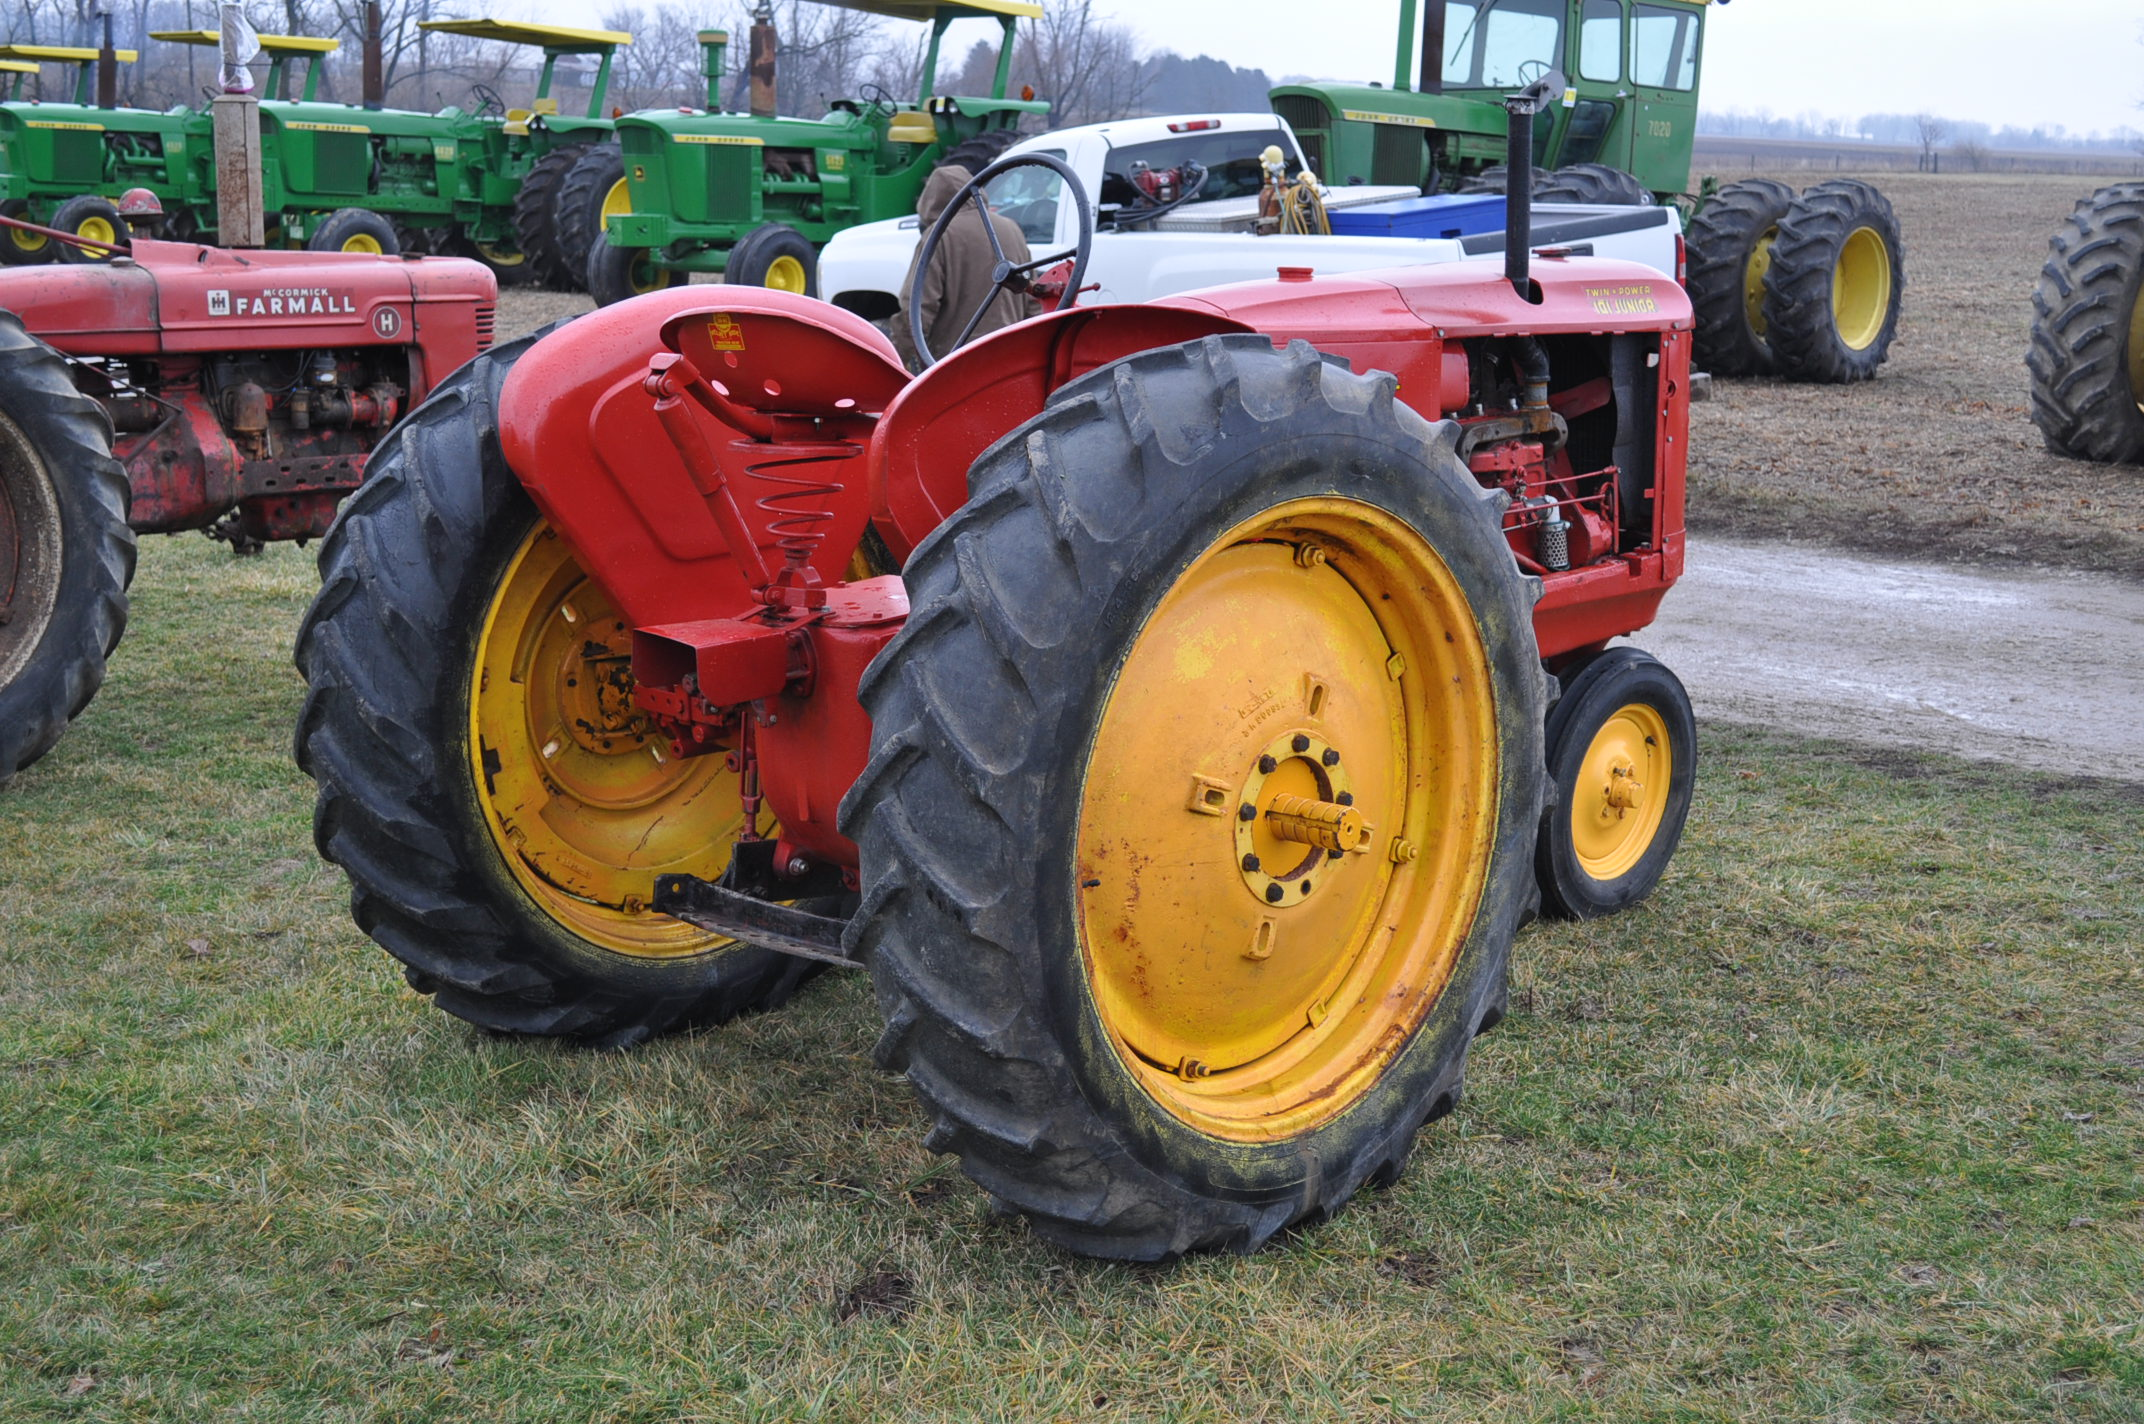 Massey Harris 101 Junior tractor, 12-38 tires, narrow front, 540 pto, SN 501605 - Image 3 of 12